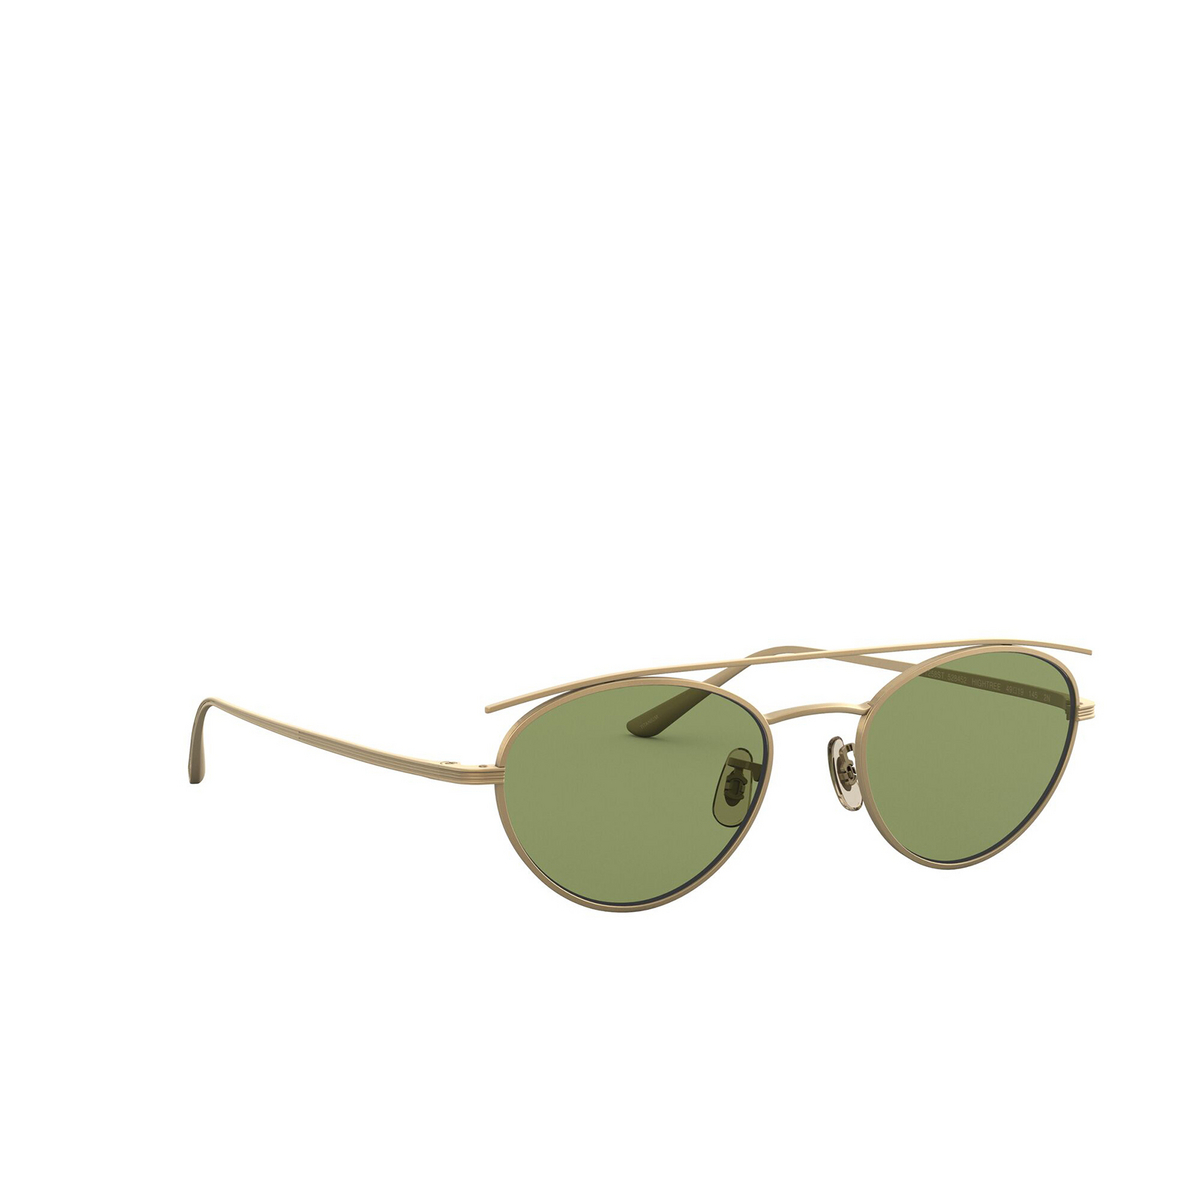 Oliver Peoples® Oval Sunglasses: Hightree OV1258ST color Antique Gold 528452 - three-quarters view.